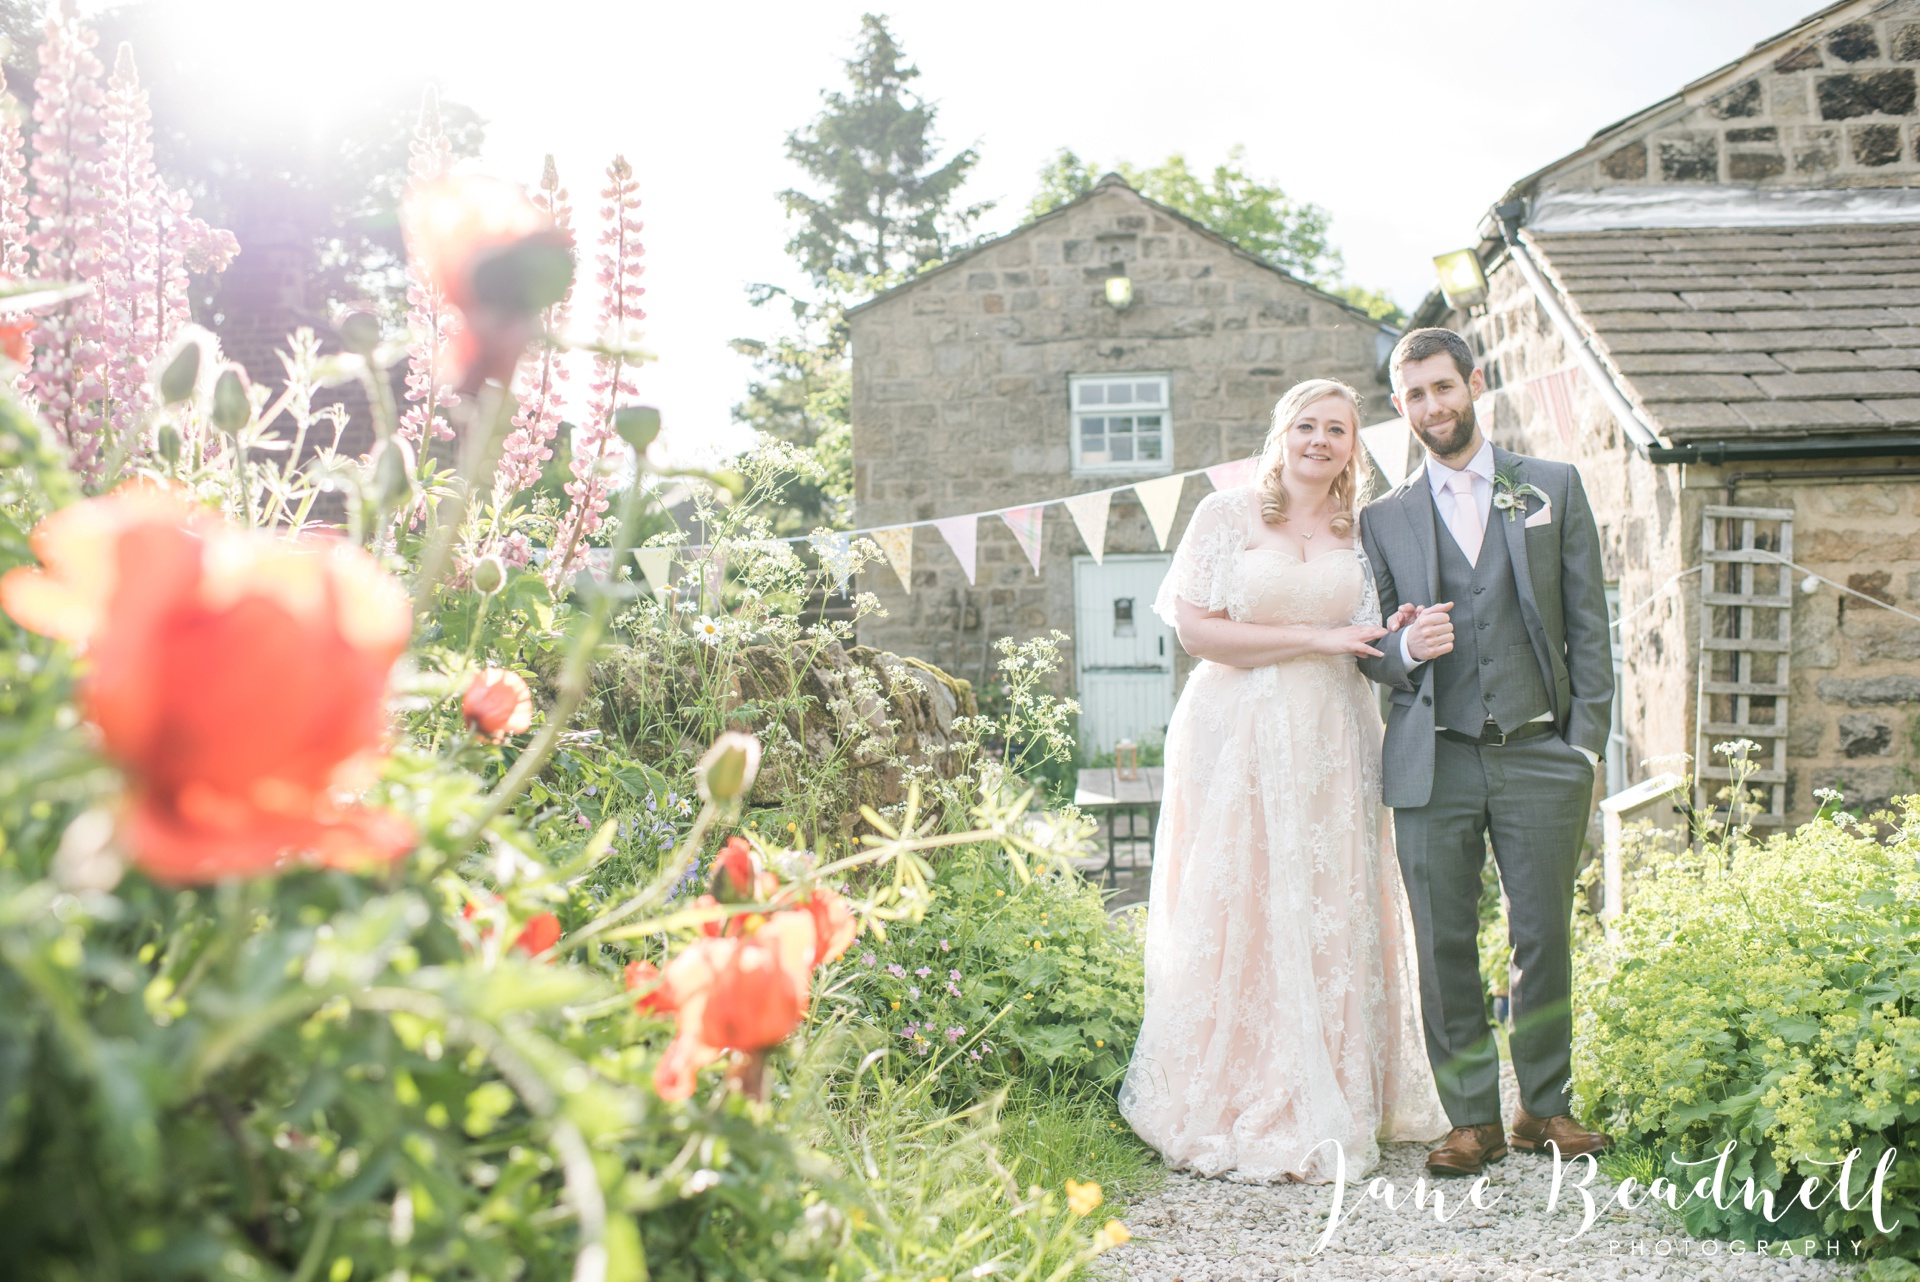 Yorkshire Wedding Photography the cheerful Chilli Barn Wedding by Jane Beadnell Photography_0149